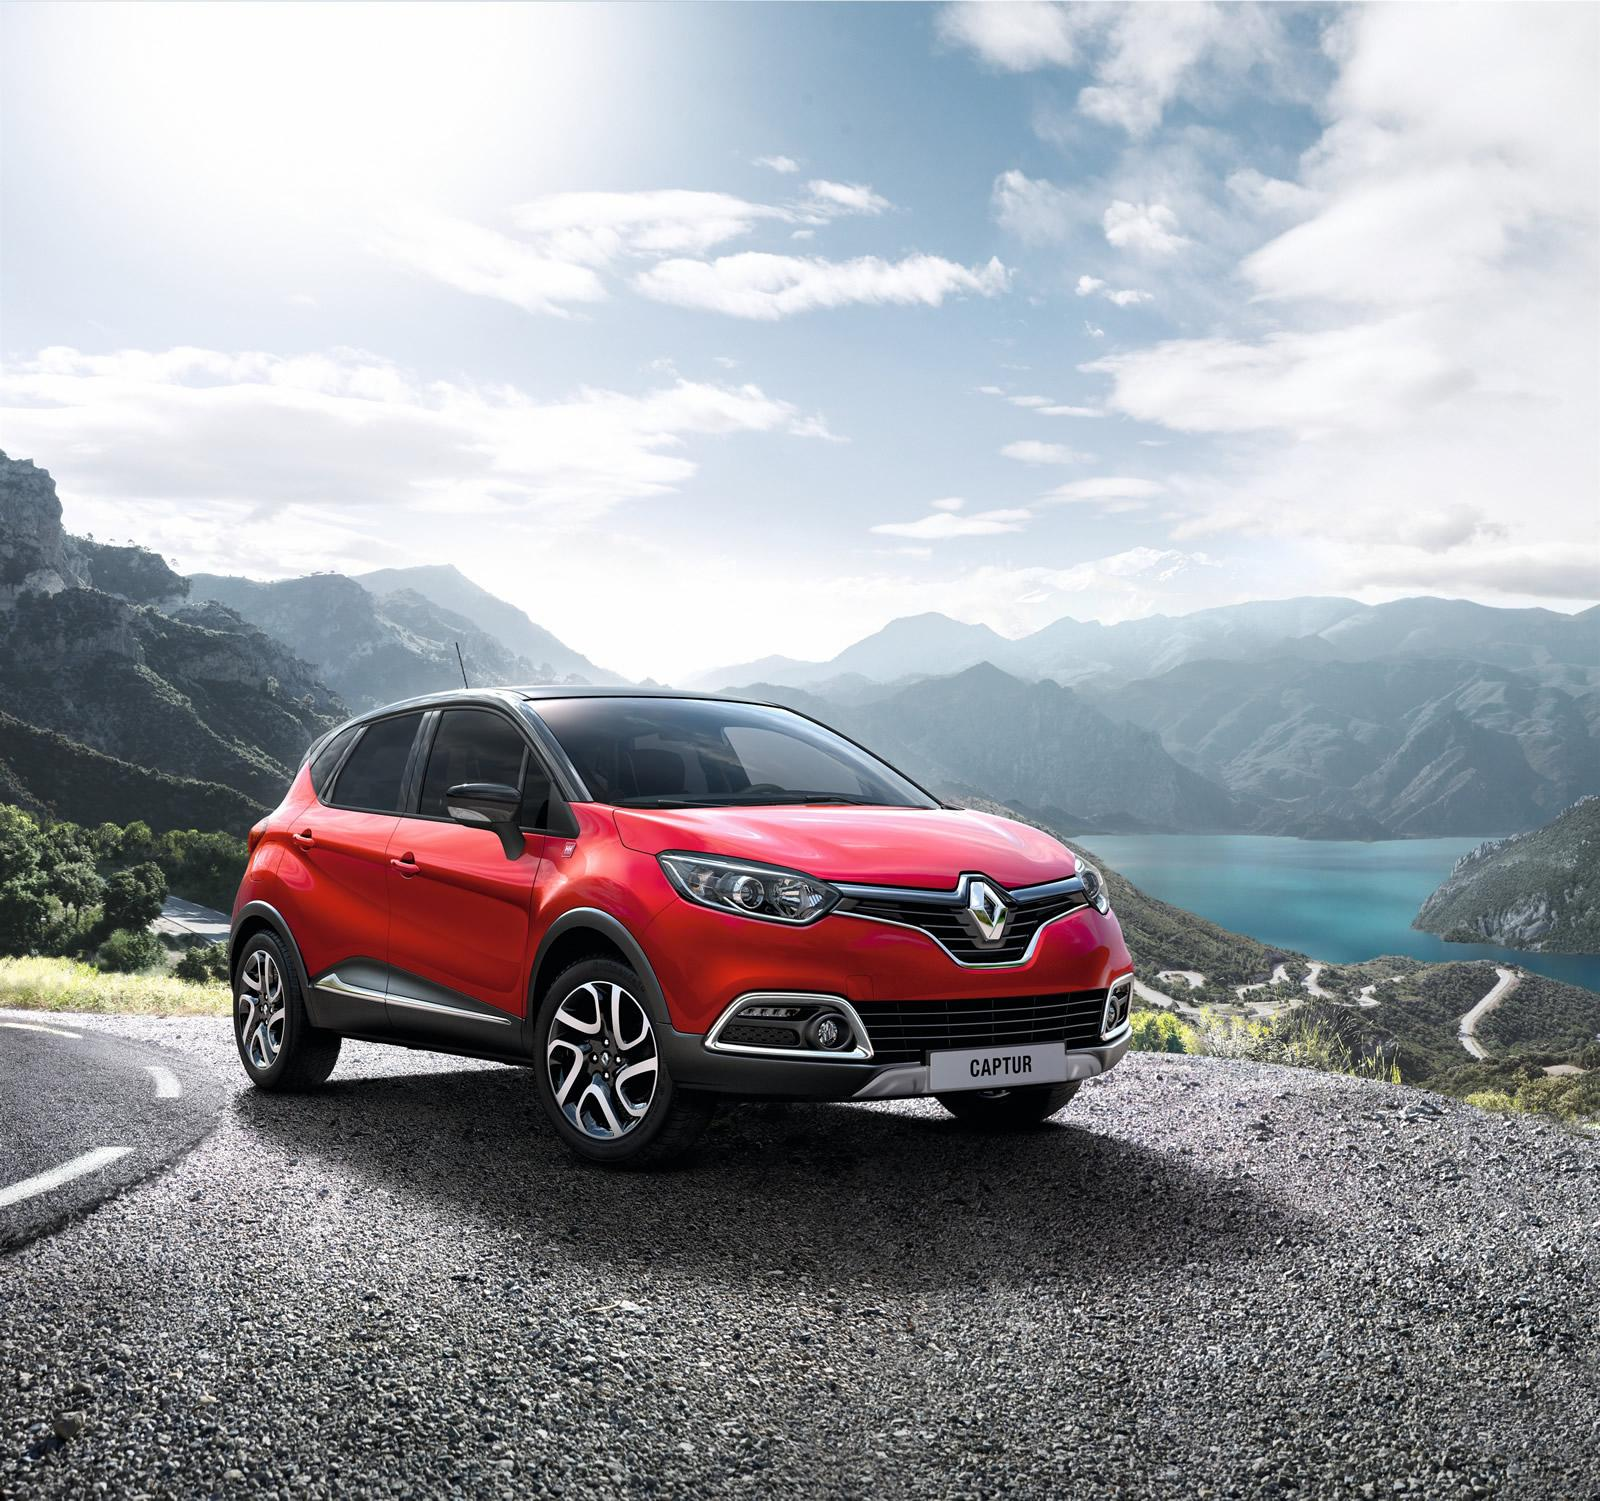 Renault Captur Gets Flame Red Paint and Extended Grip ...